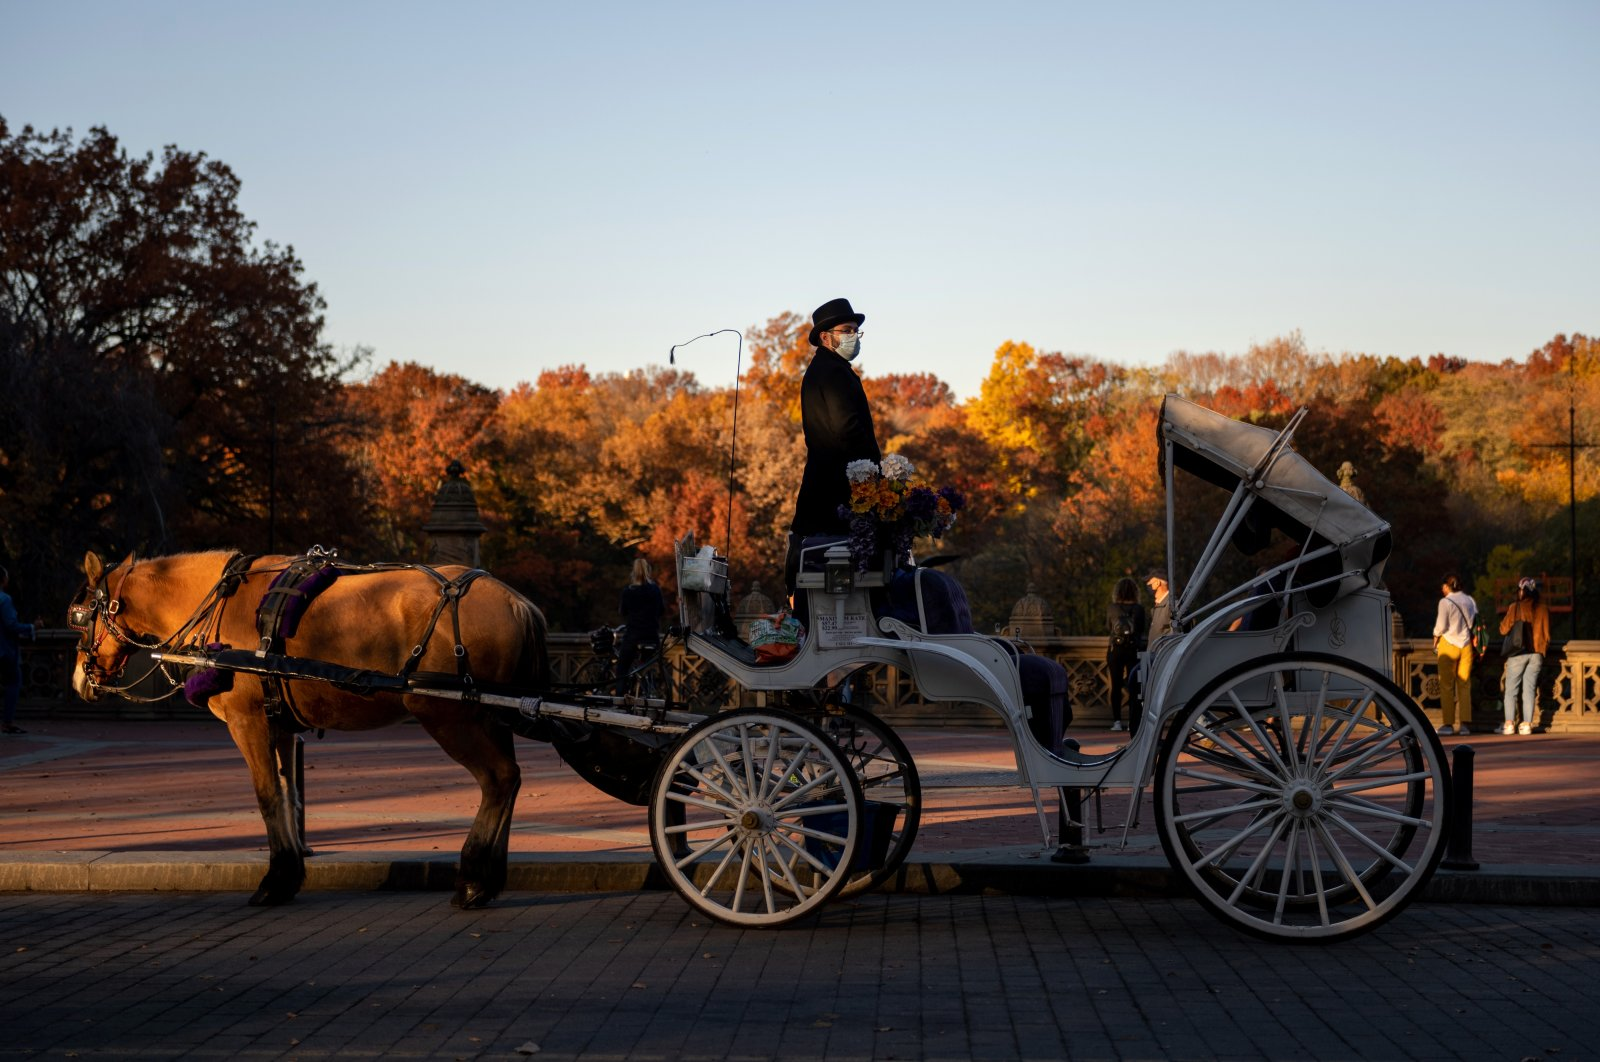 A coachman wearing a mask to protect against the coronavirus looks out from his horse-drawn carriage in Central Park, New York City, New York, Nov. 9, 2020. (Photo by Getty Images)